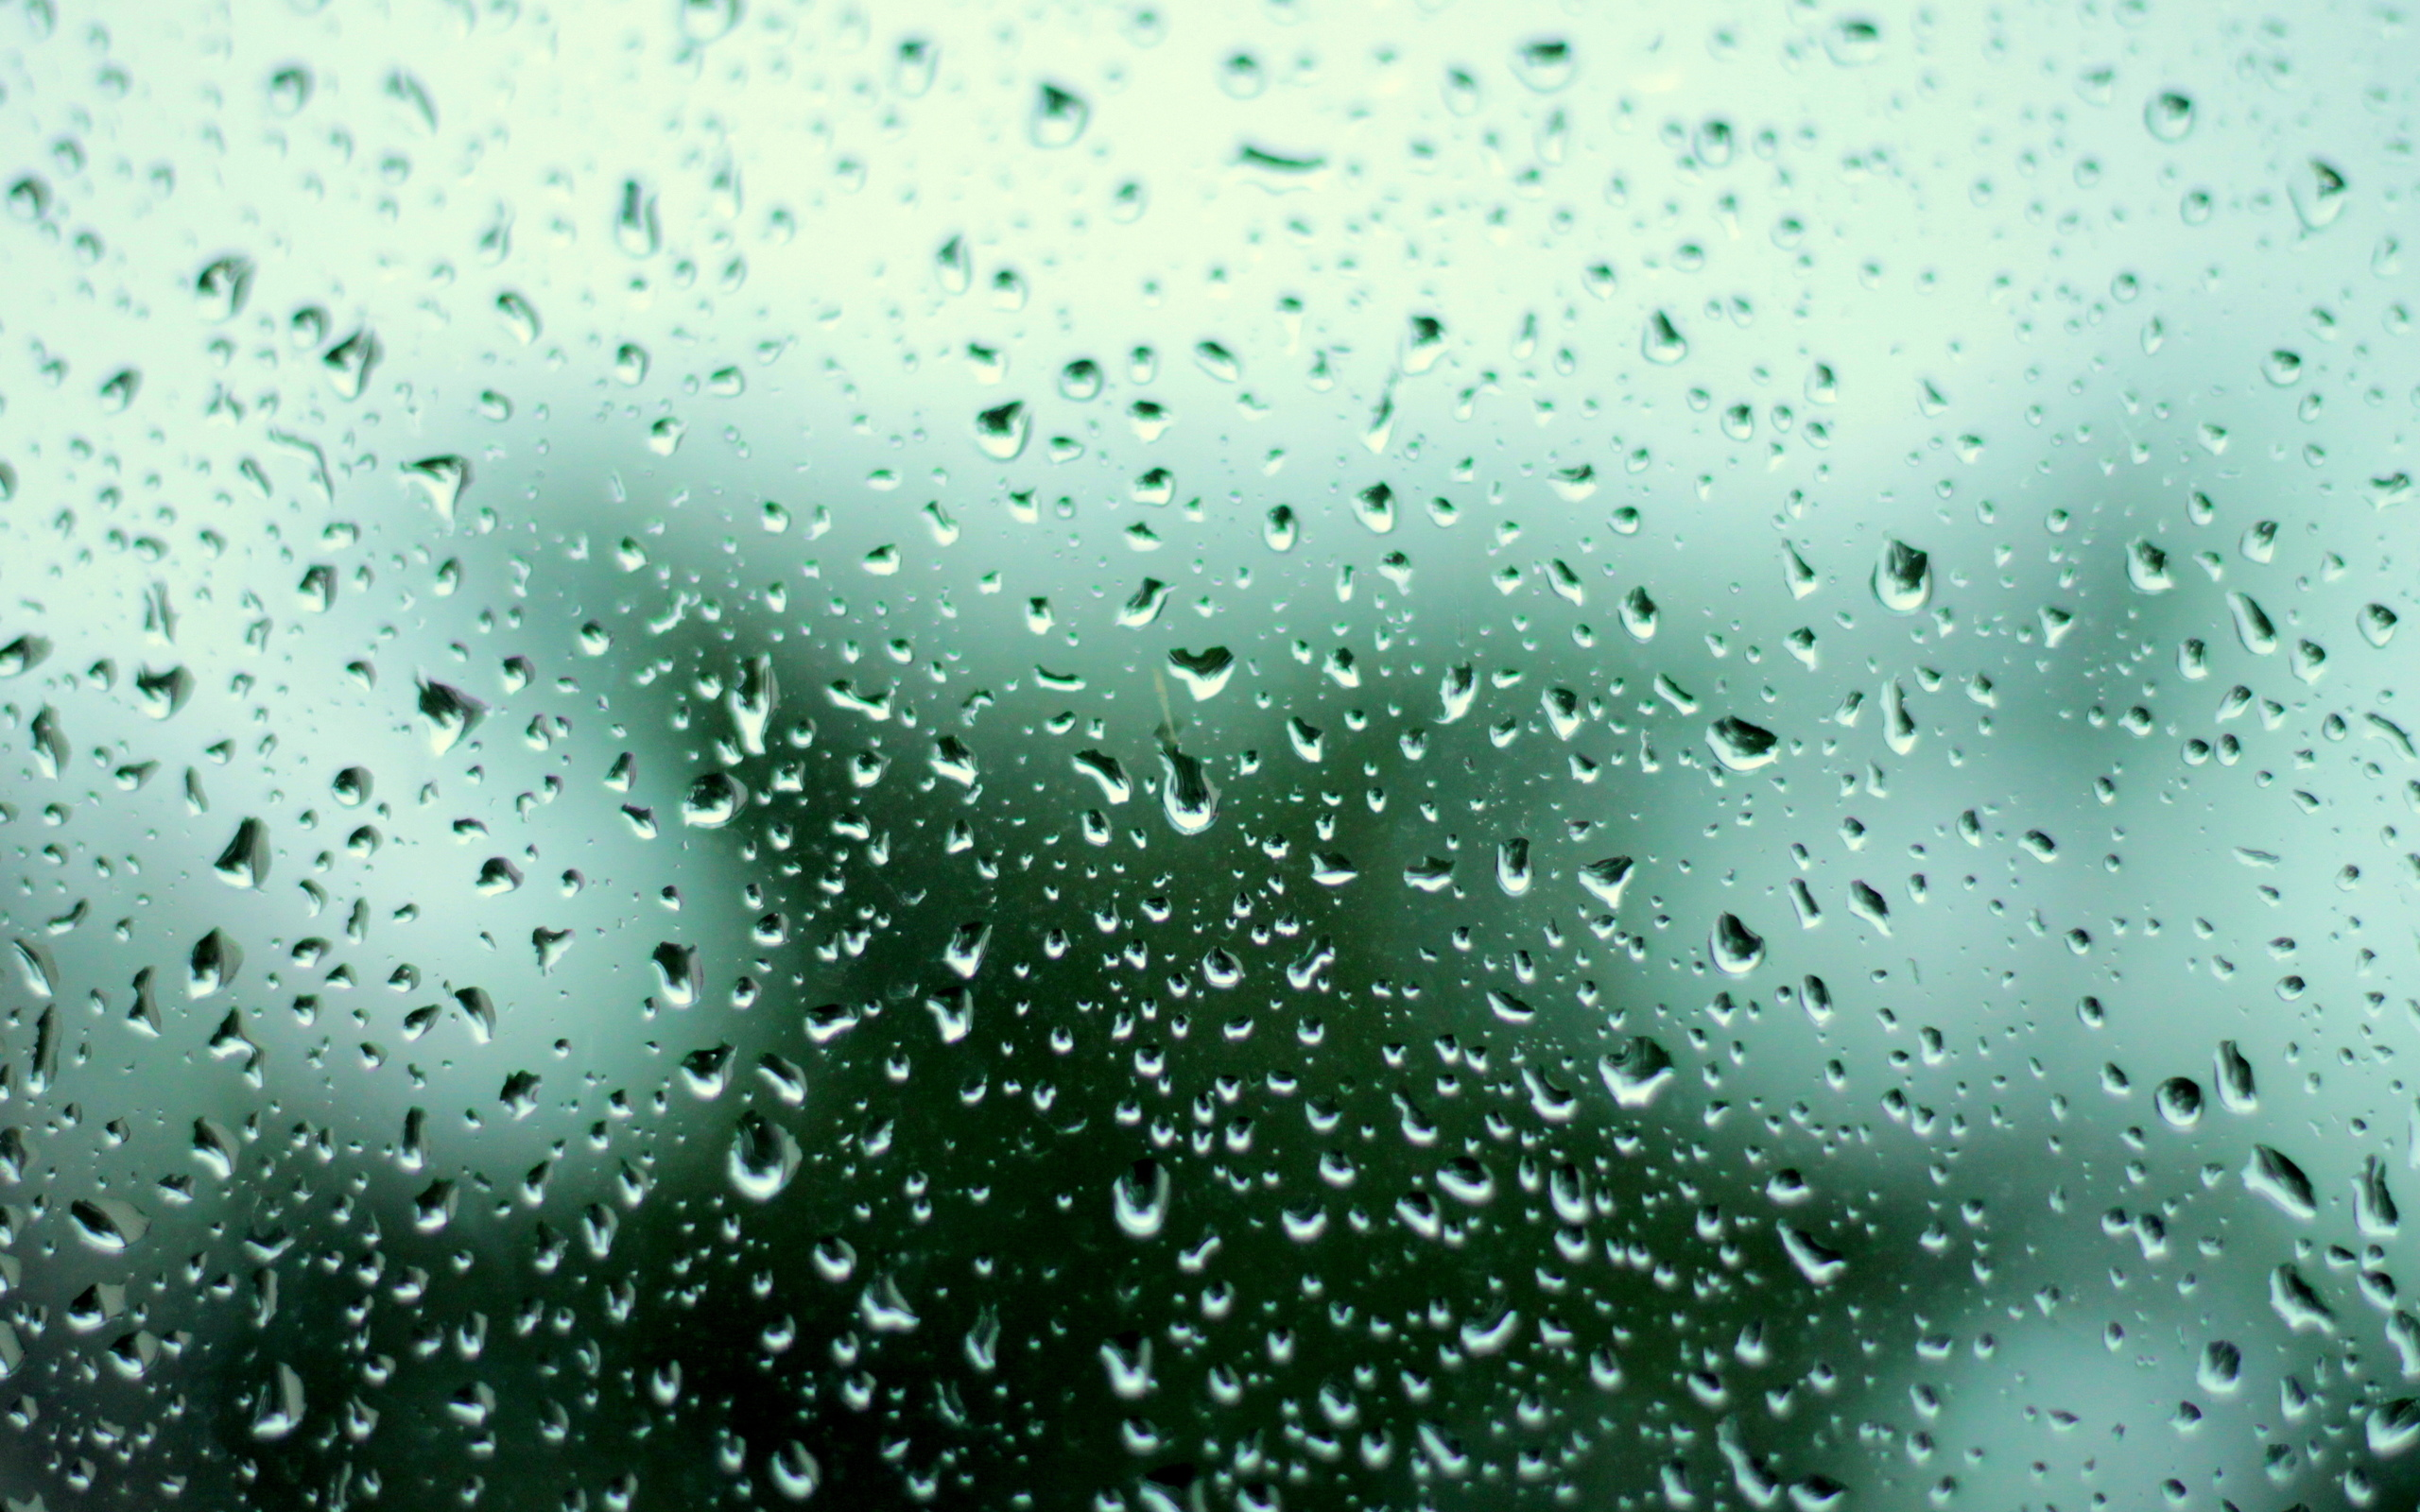 Raindrop Wallpaper Iphone X Raindrops Hd Wallpaper Background Image 2560x1600 Id